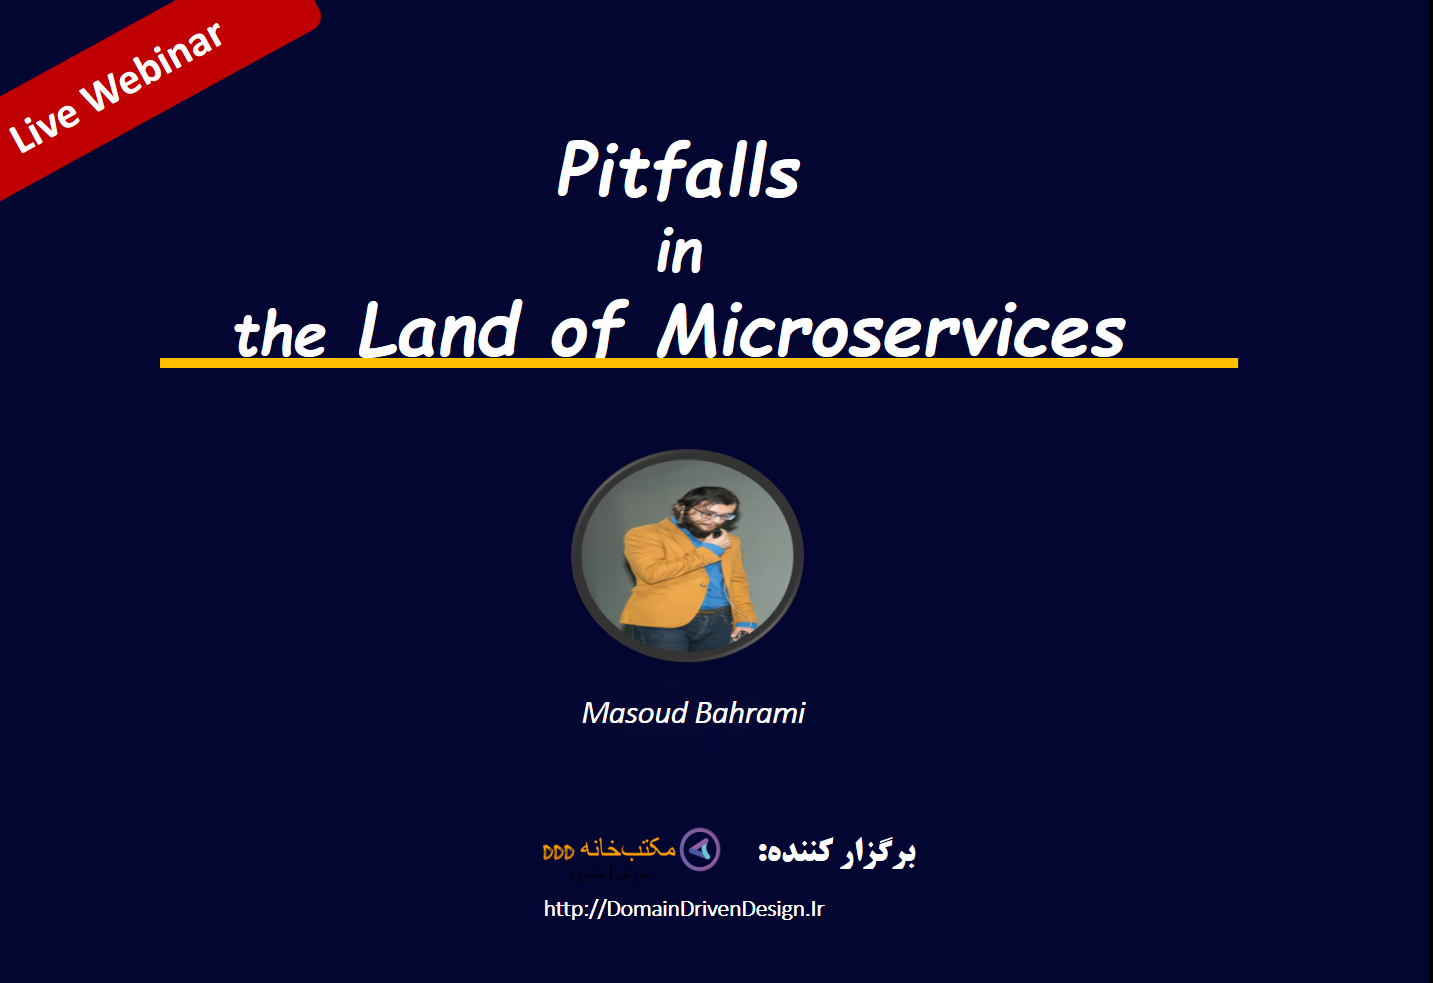 Pitfalls in the Microservices Land